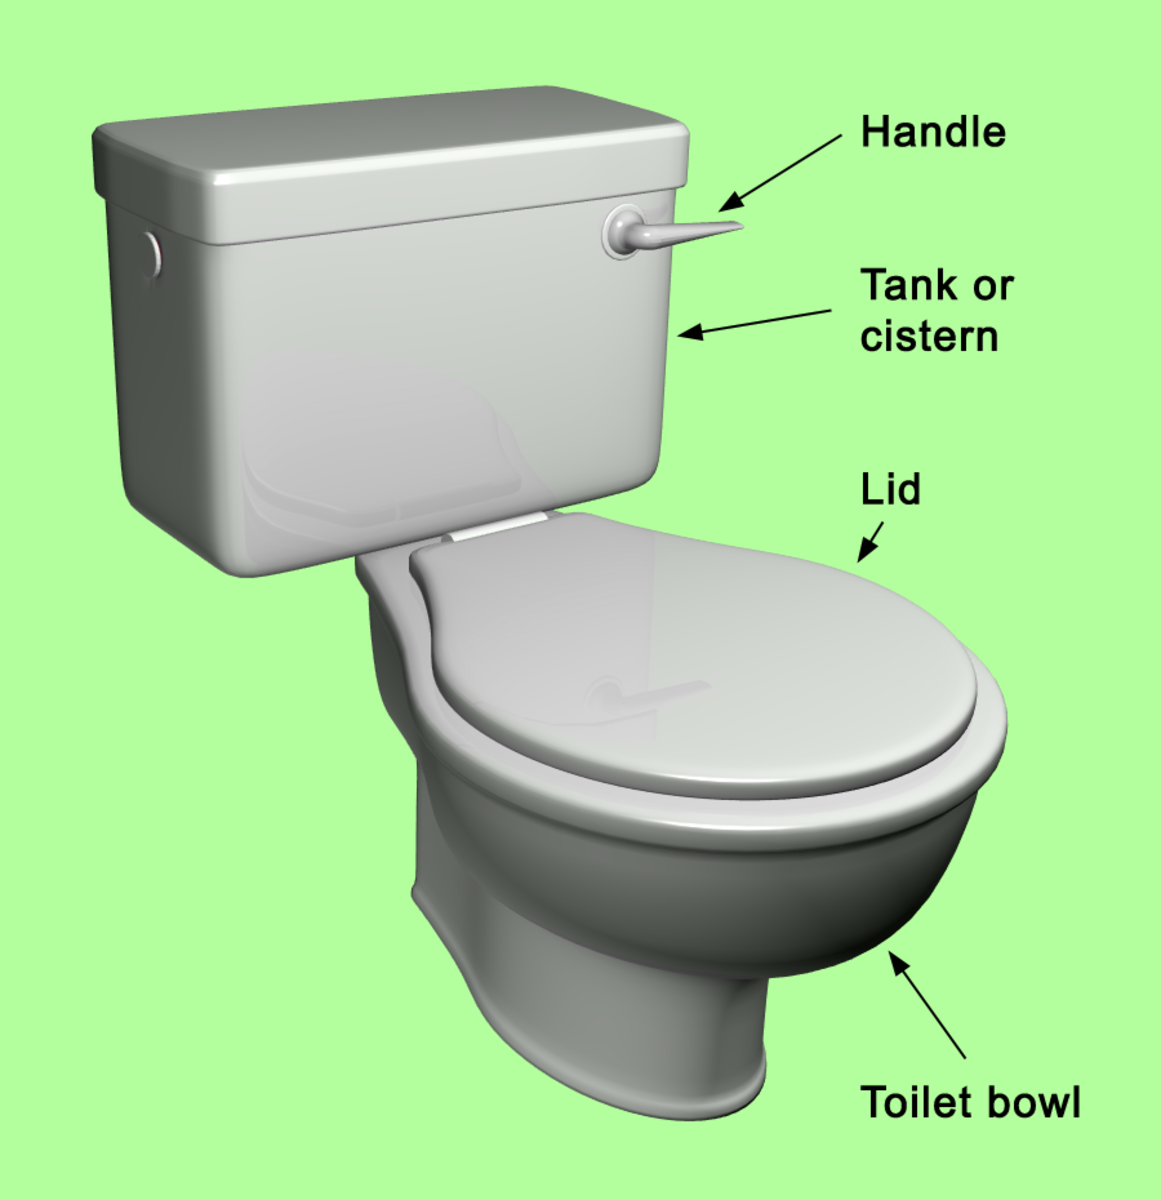 How To Clean Your Toilet With A Steamer Or Boiling Water Hubpages - Toilet bowl tank parts